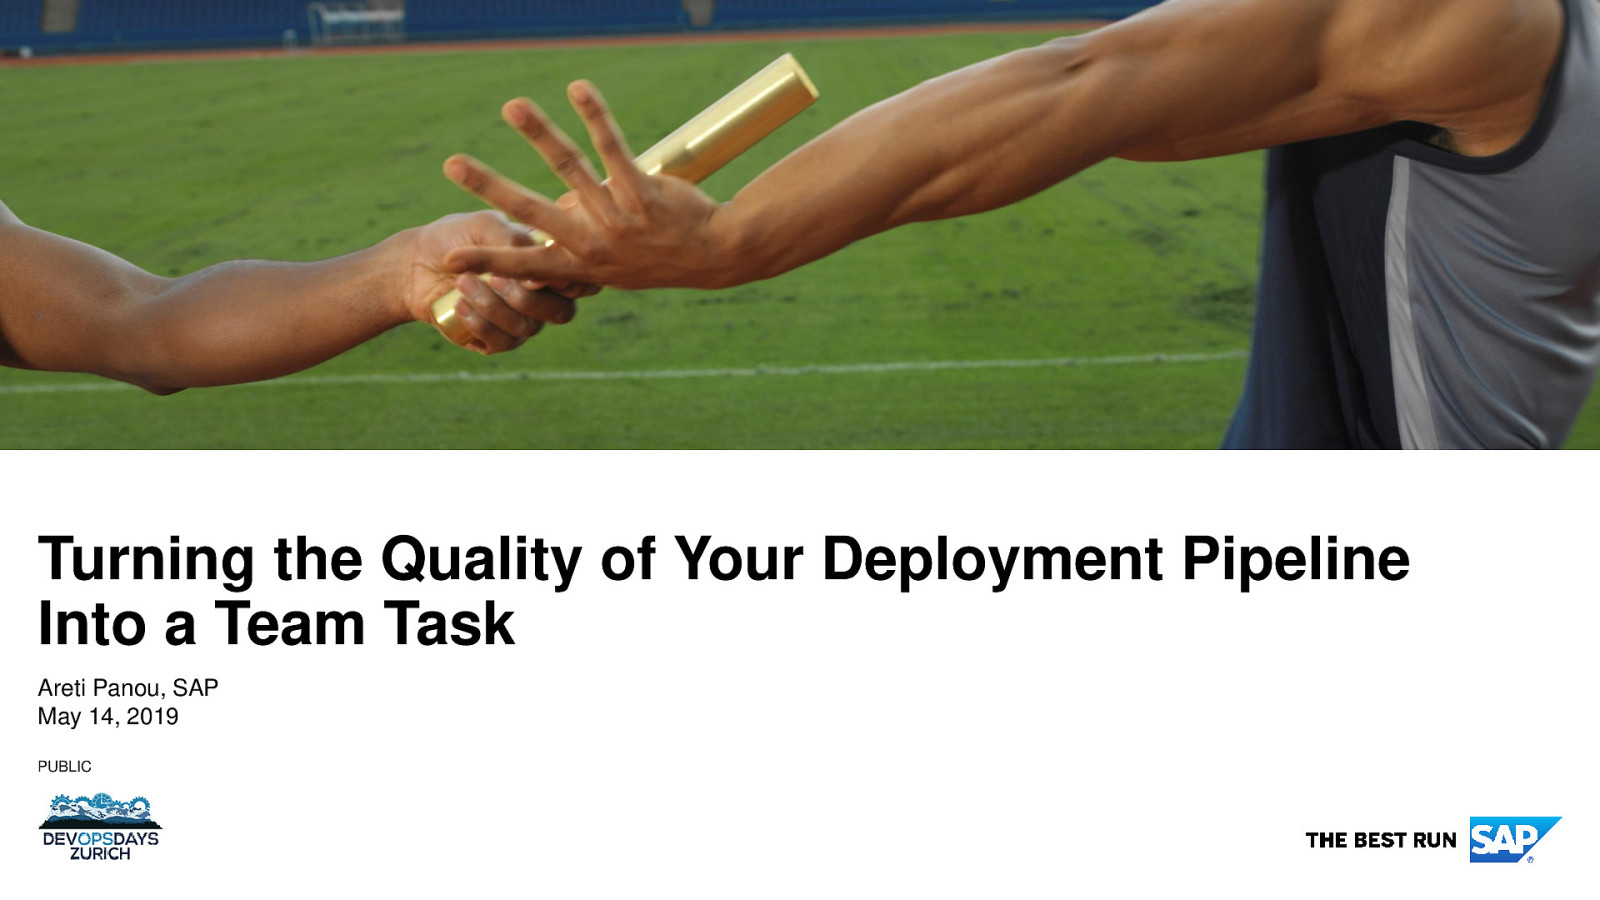 A Team Into turning the quality of your deployment pipeline into a team